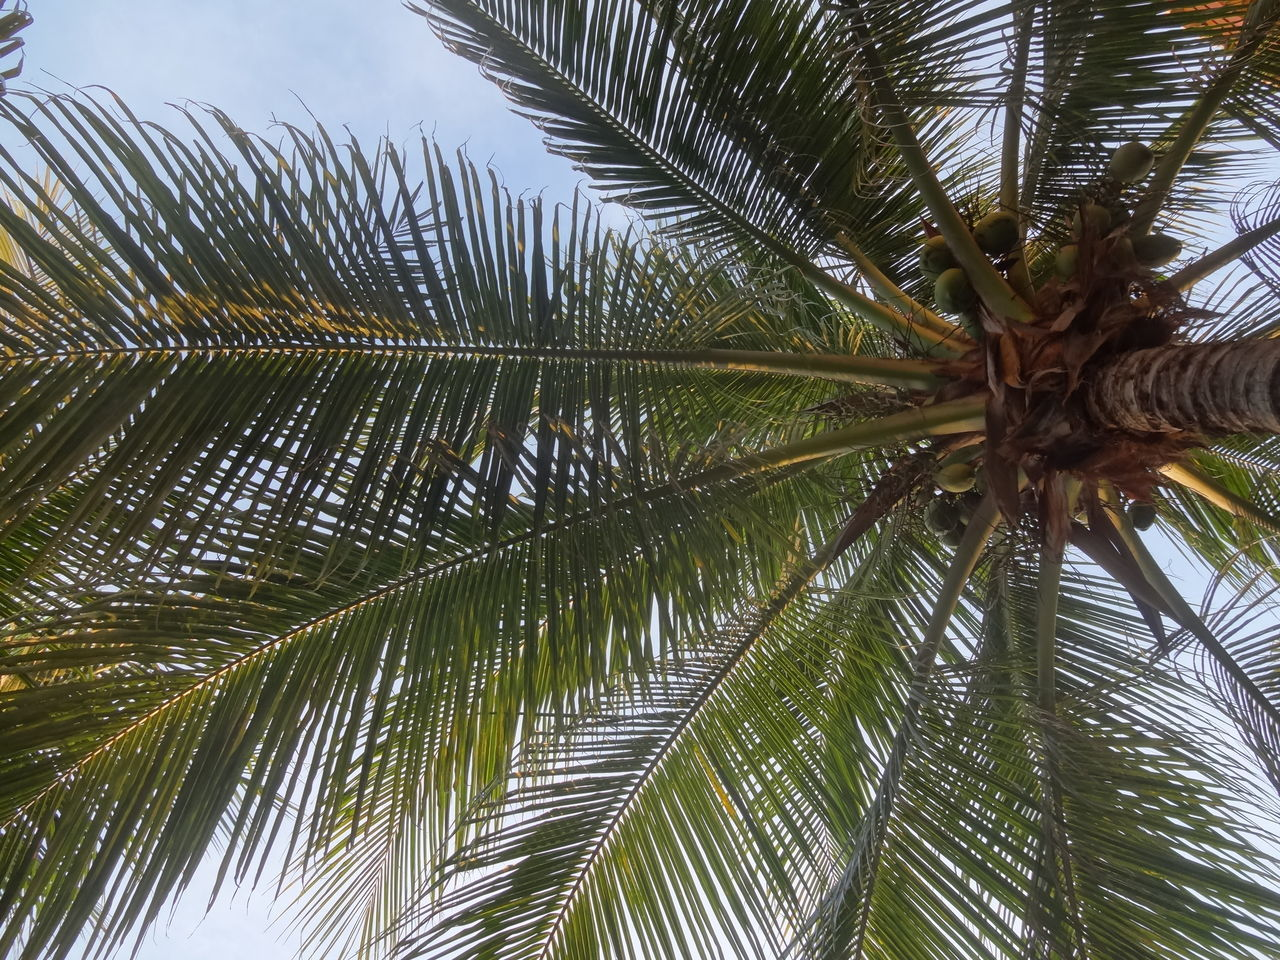 palm tree, nature, growth, low angle view, tree, beauty in nature, day, leaf, no people, frond, outdoors, close-up, freshness